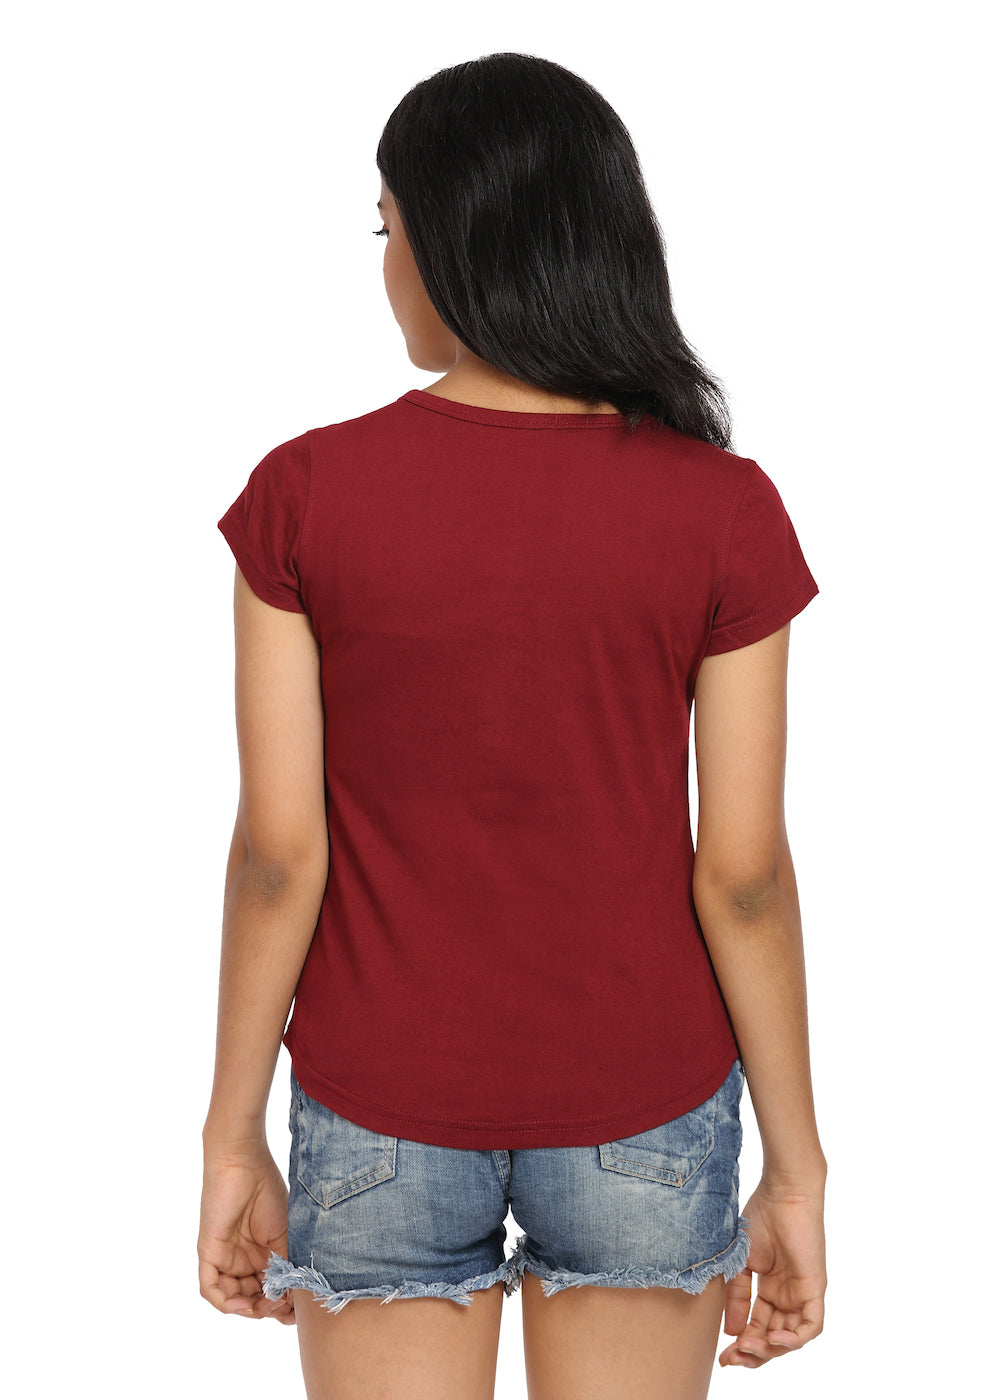 Maroon Knit Half Sleeves Round Neck Top with Buttons - GENZEE